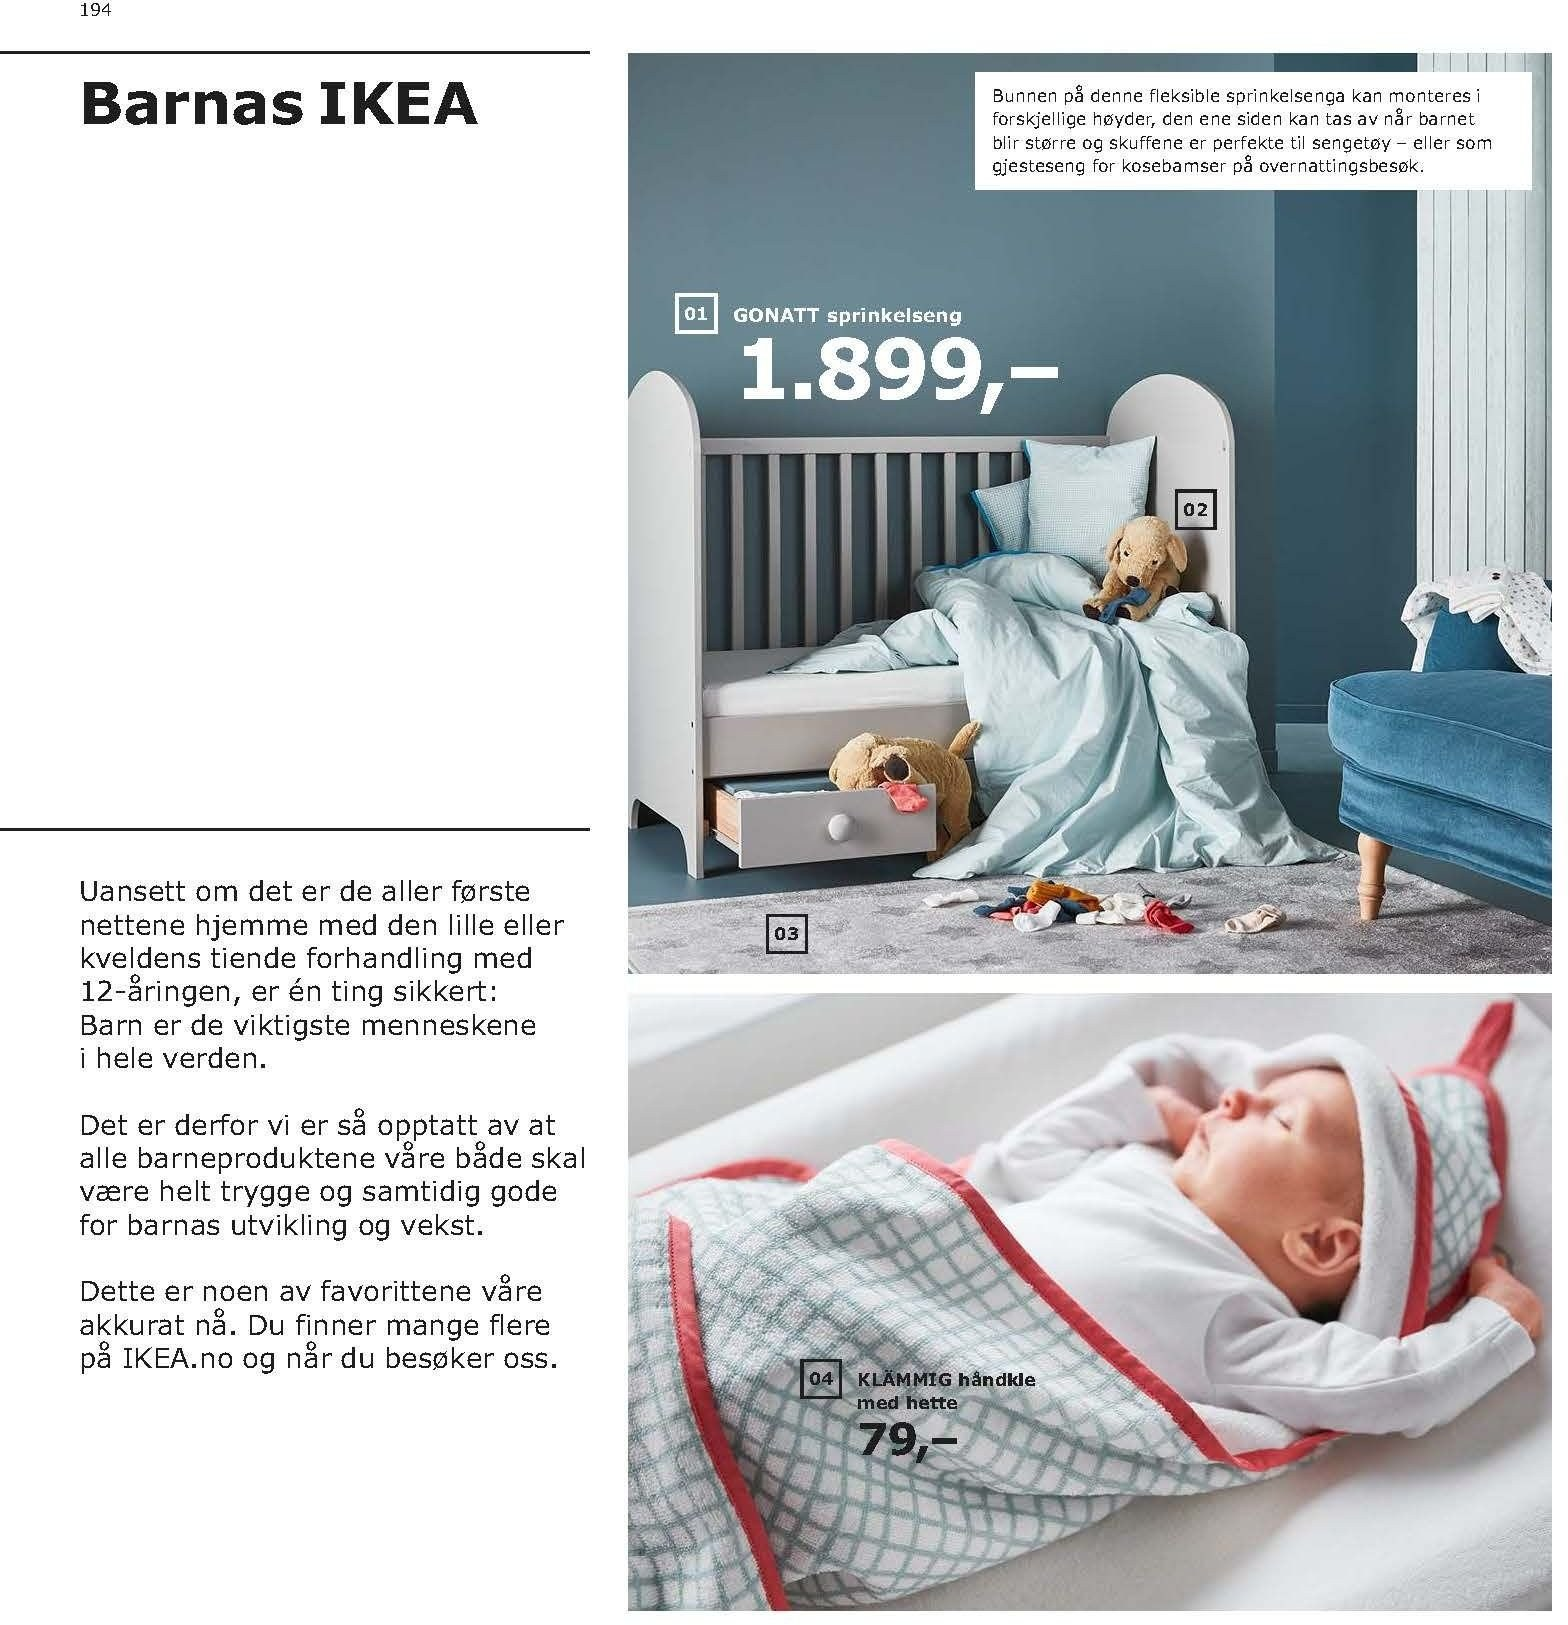 Kundeavis IKEA - 21.08.2018 - 11.08.2019. Side 194.